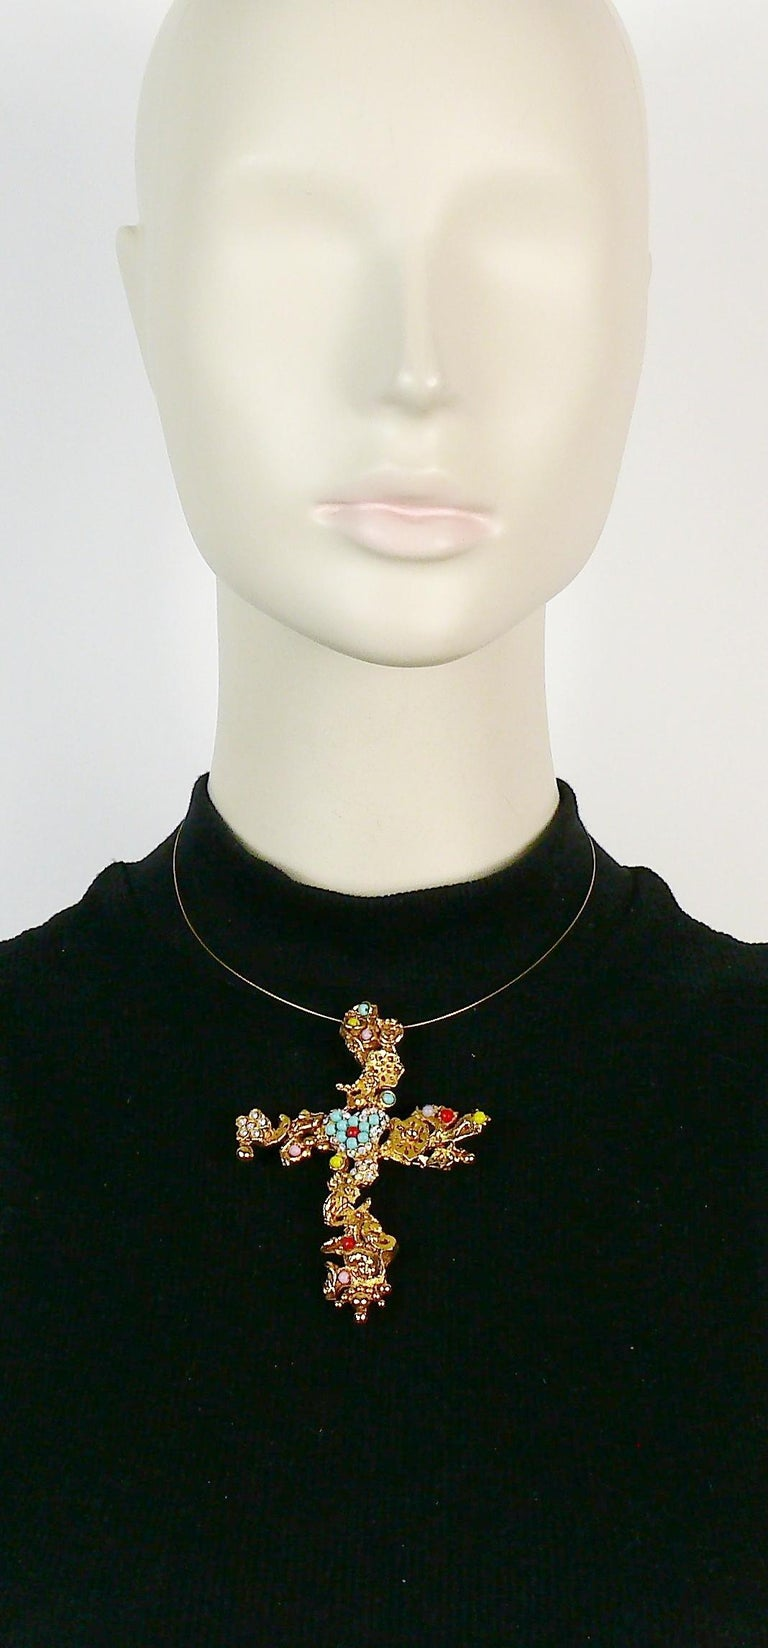 CHRISTIAN LACROIX vintage pendant necklace featuring a gold toned cross with intricate baroque pattern, crystals and colourful beads, cherub head at the bottom and CL logo.  Can be worn as a brooch.  Marked CHRISTIAN LACROIX CL Made in